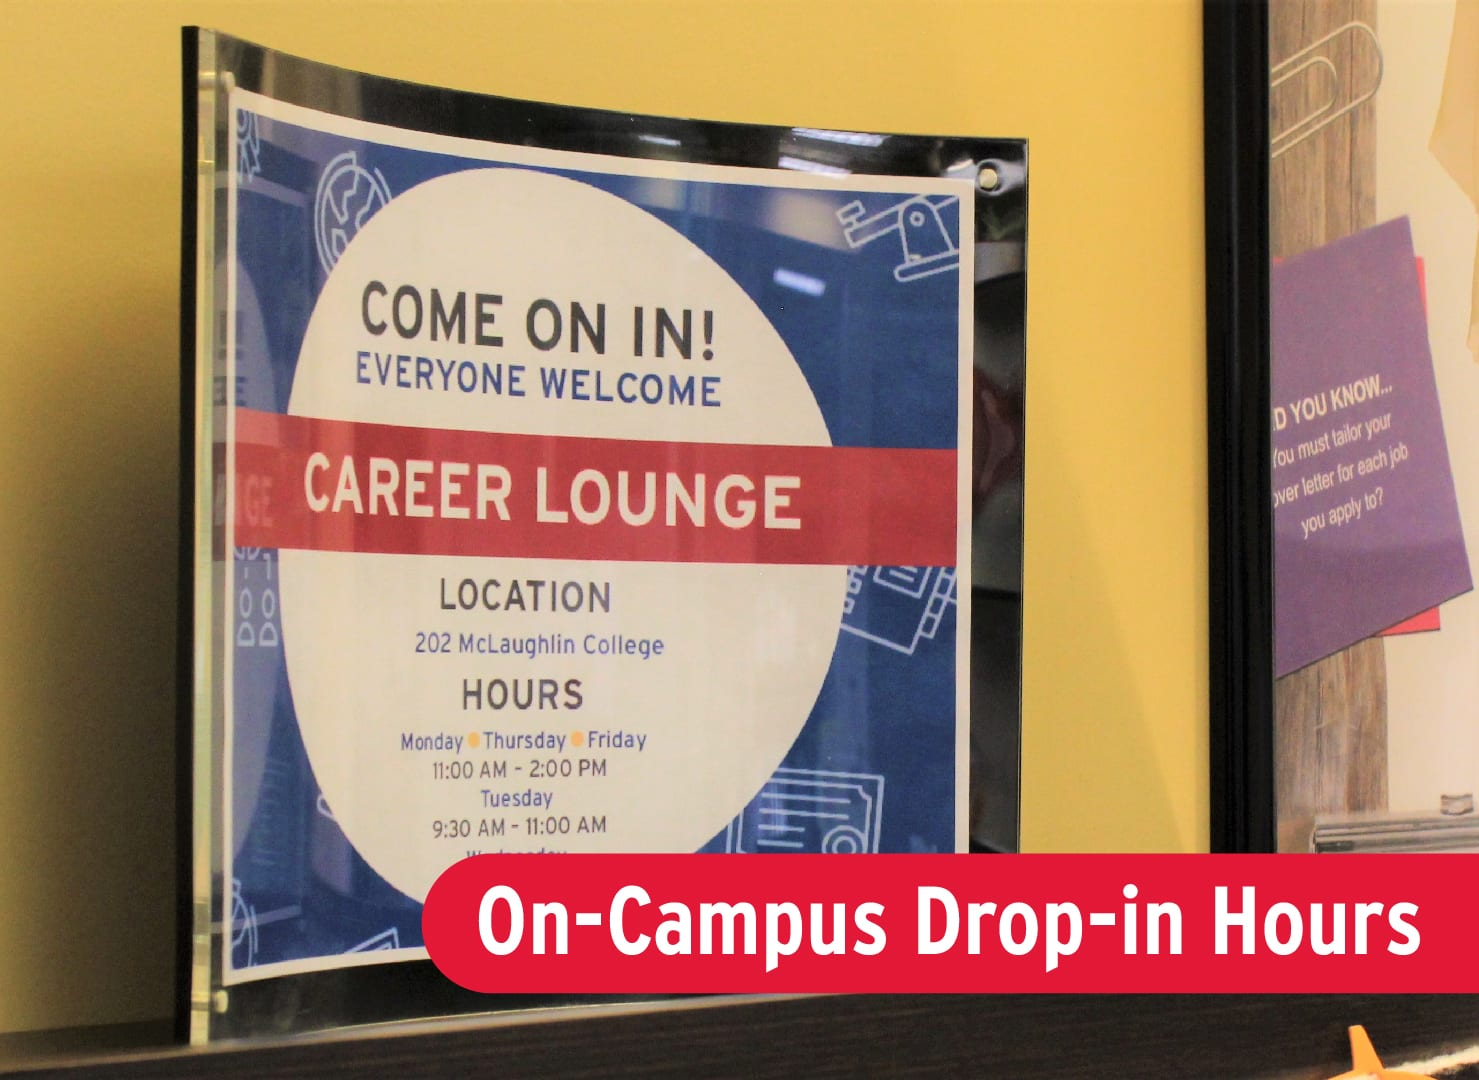 Career Centre Drop-in Hours